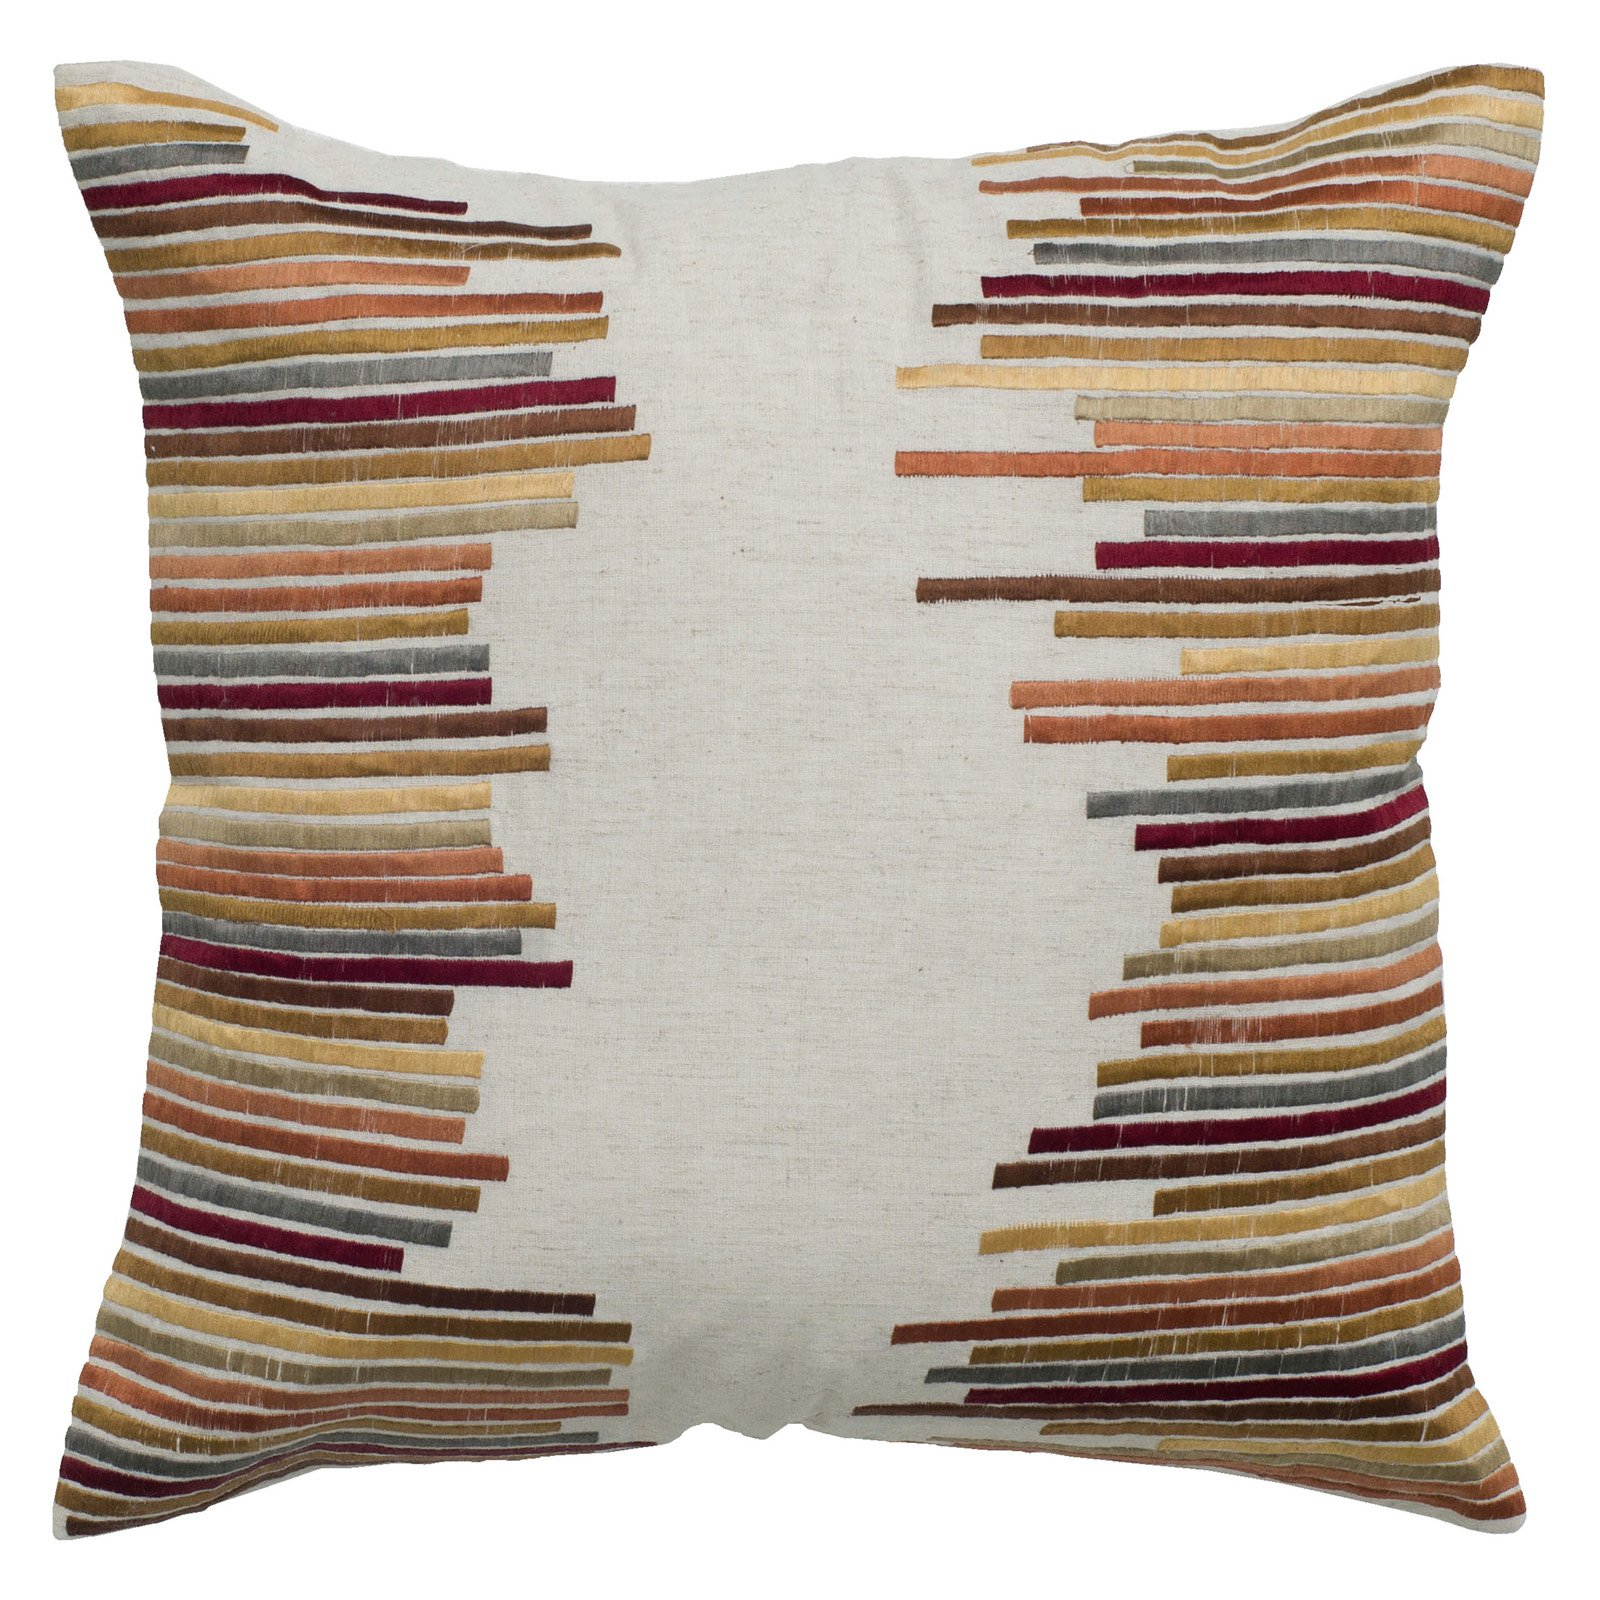 Rizzy Home Beige Color Stack Decorative Throw Pillow | from hayneedle.com